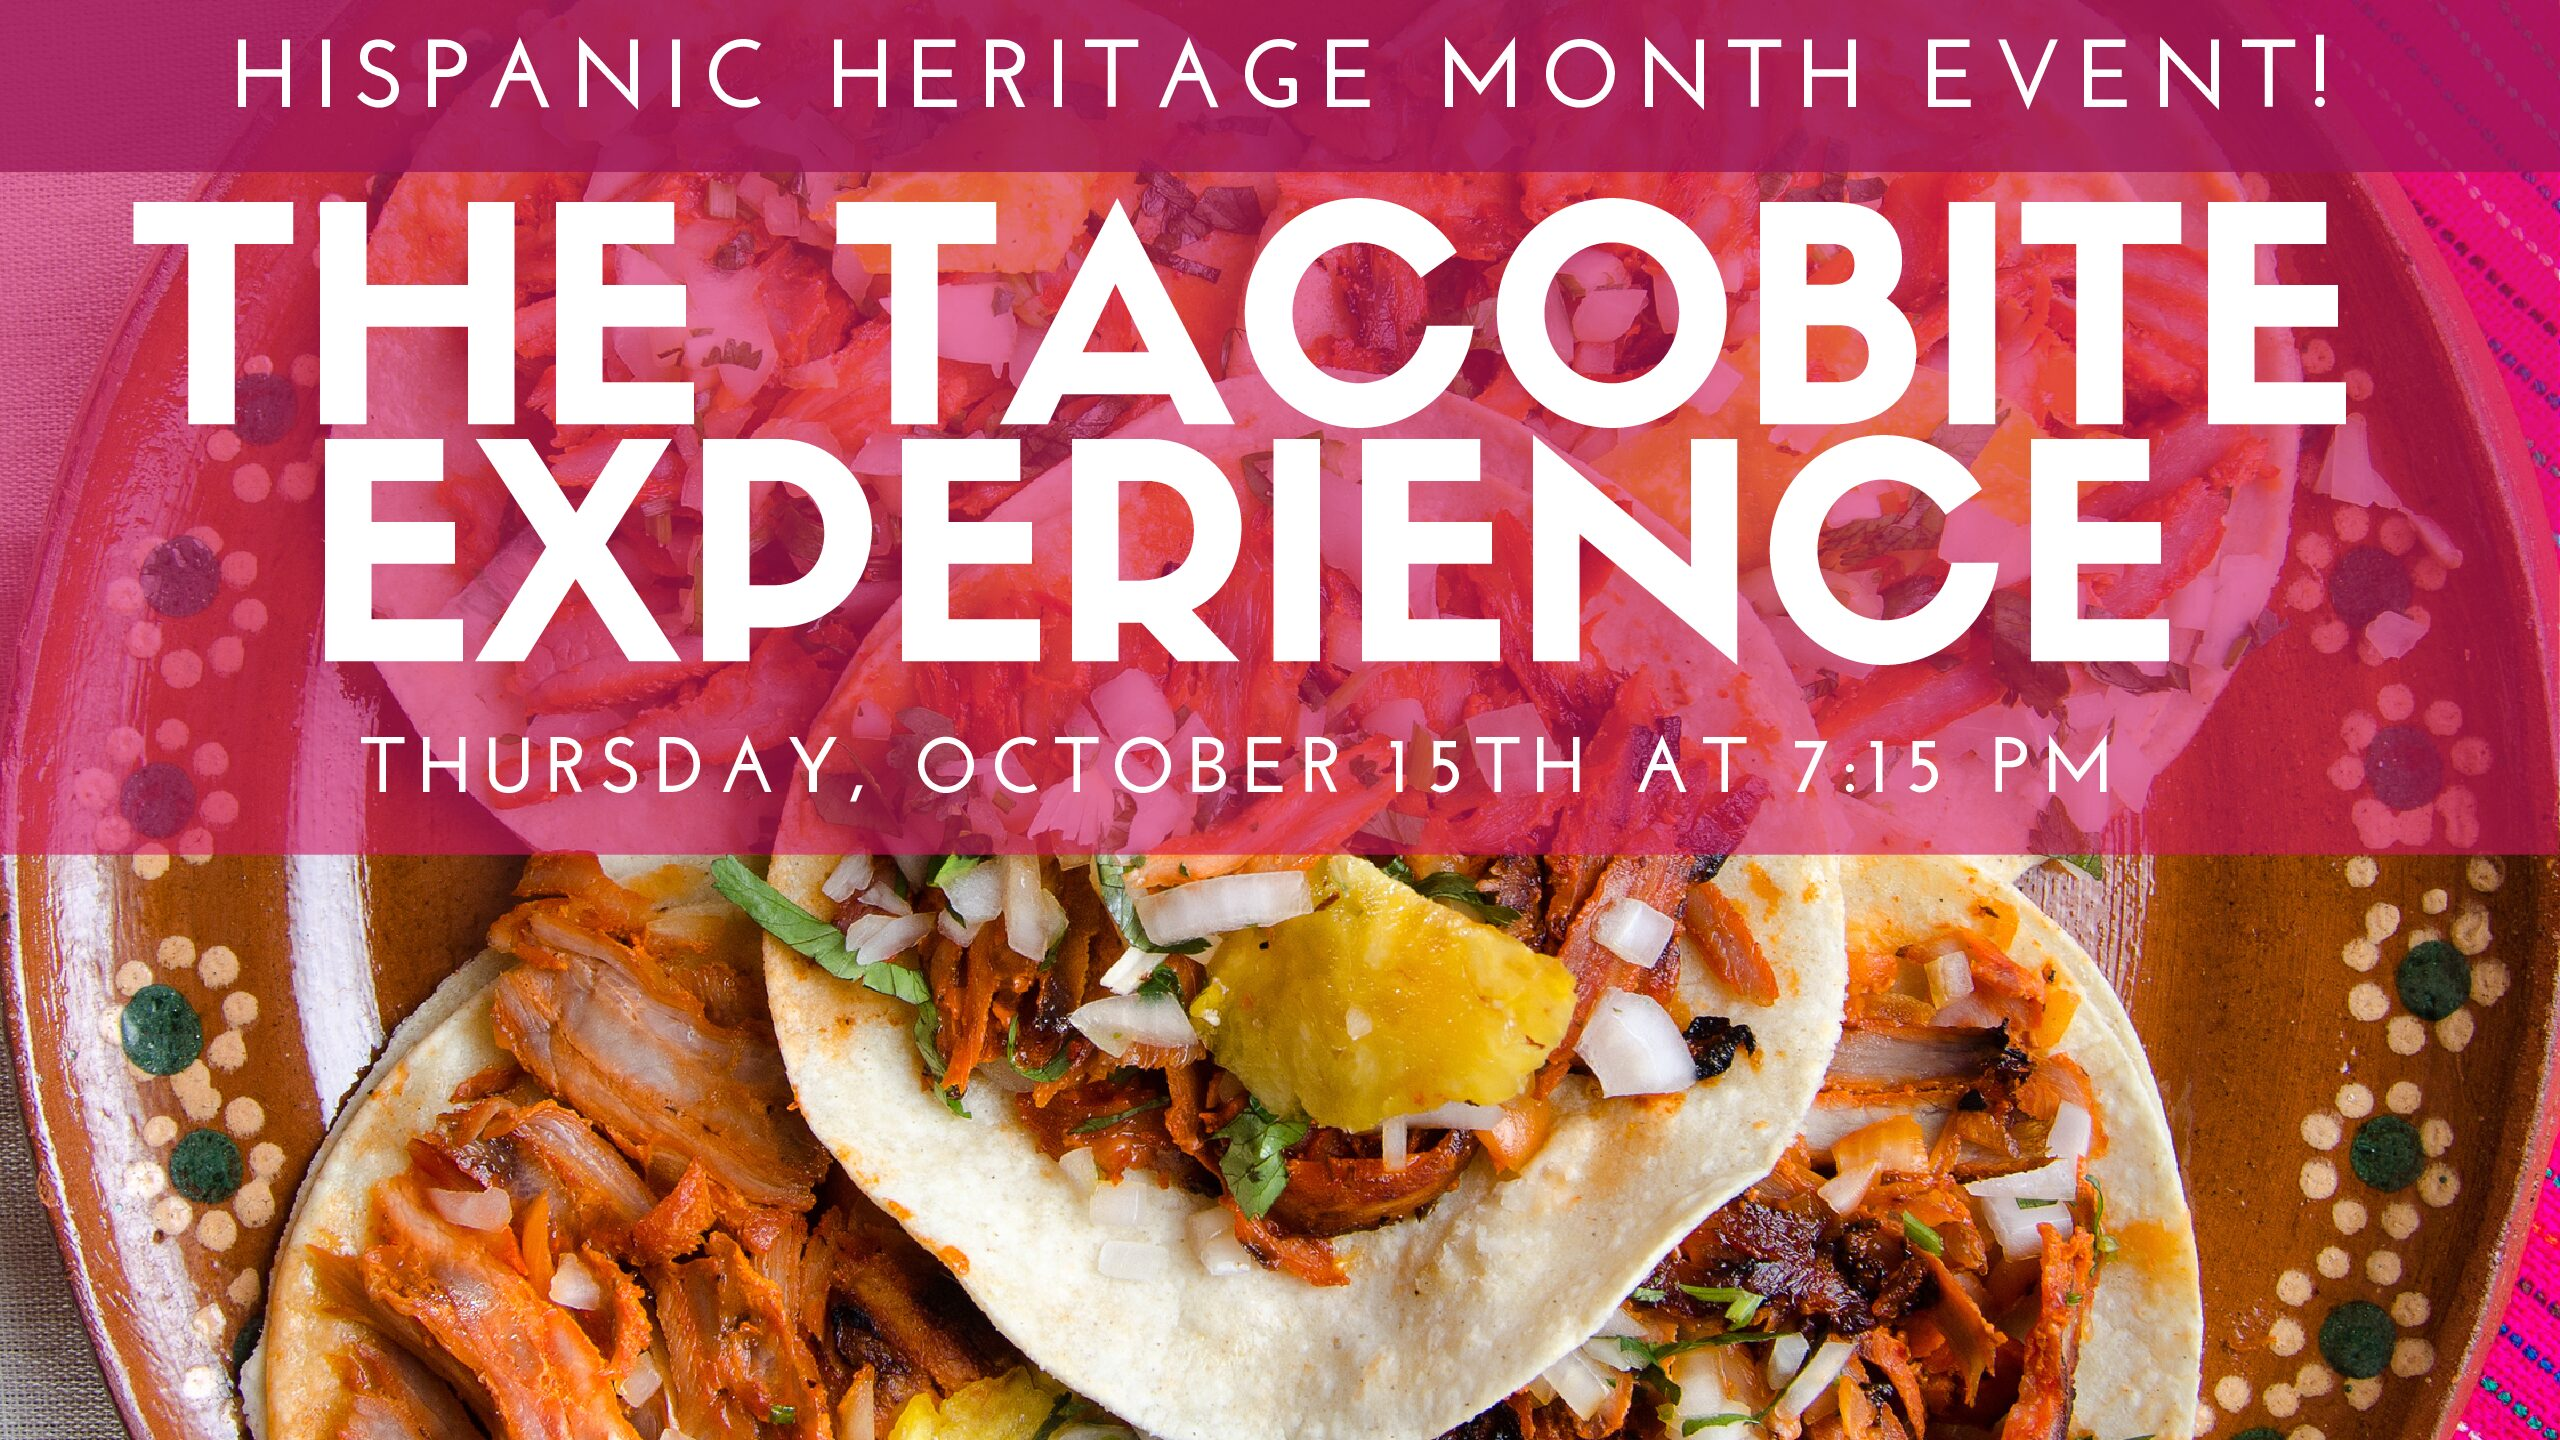 The Tacobite Experience